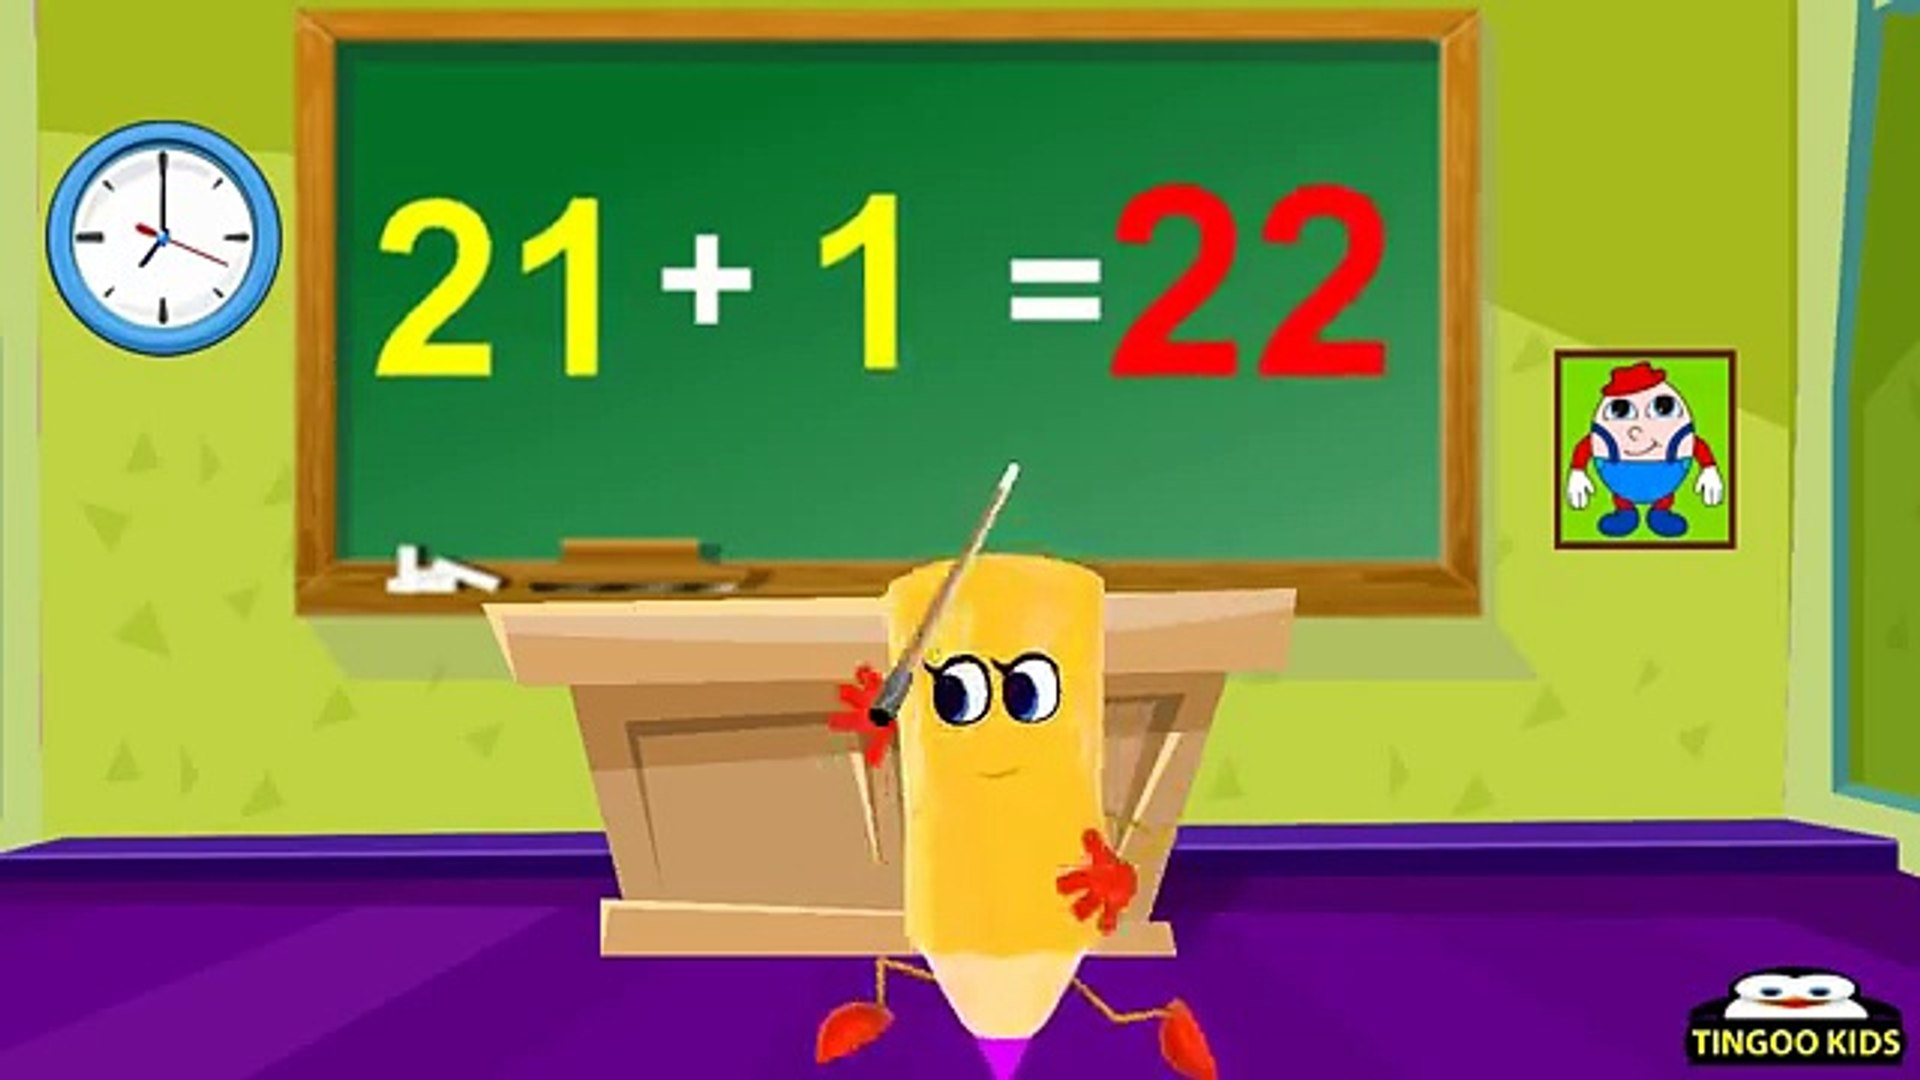 Tutorial   Learn To Add 21 Table   Kids Math Education